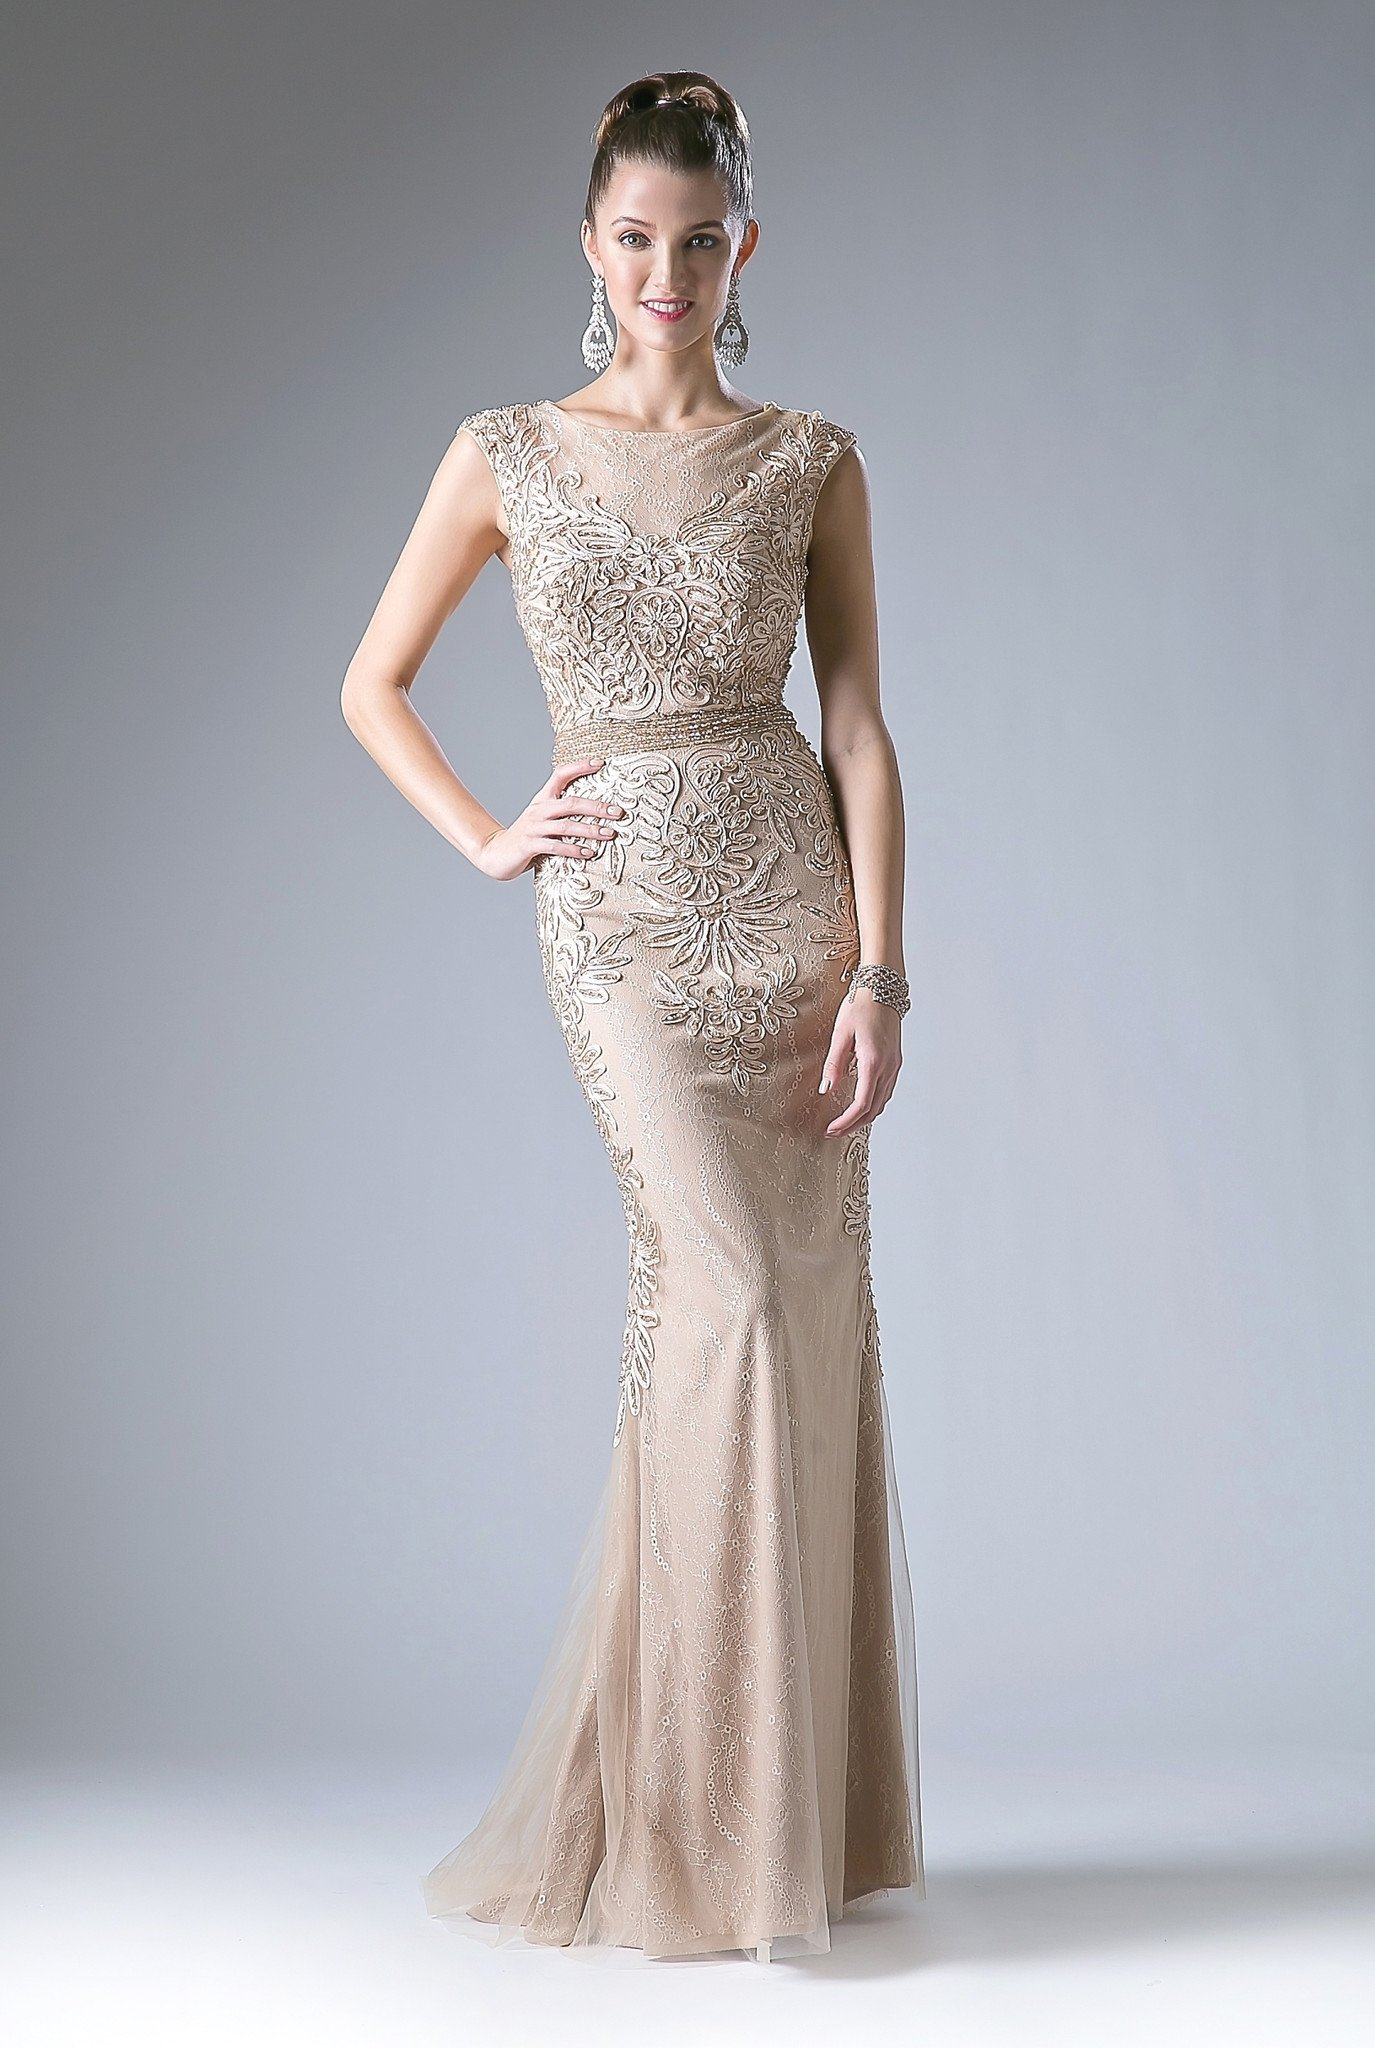 Champagne fitted lace gown with crystal beaded details and tulle overlay.